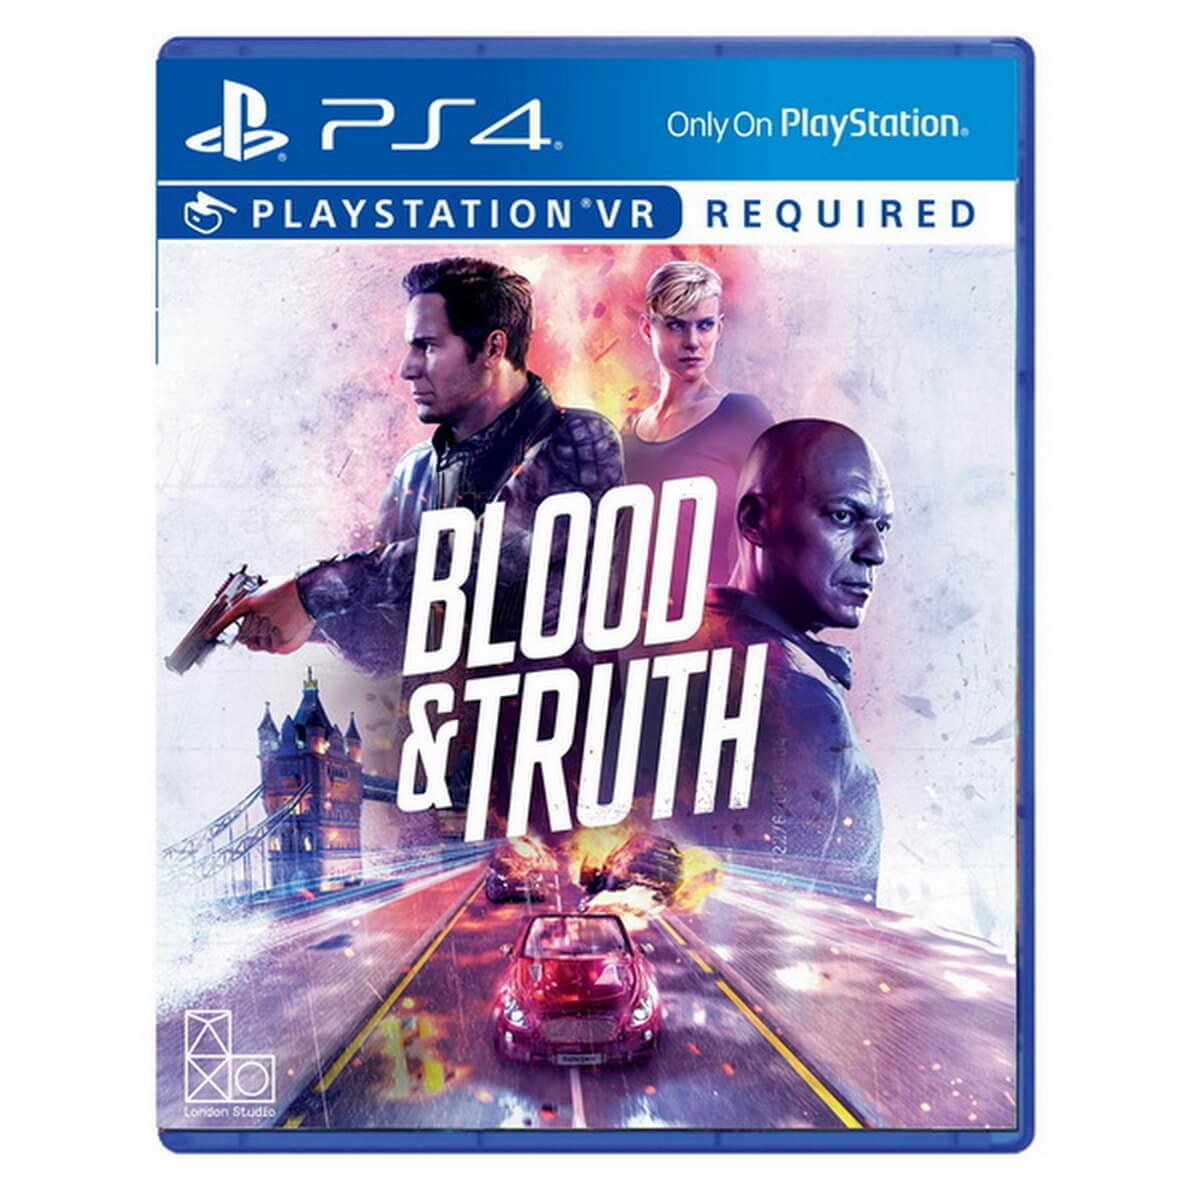 Free Blood & Truth VR title and 2 Move Motion Controllers